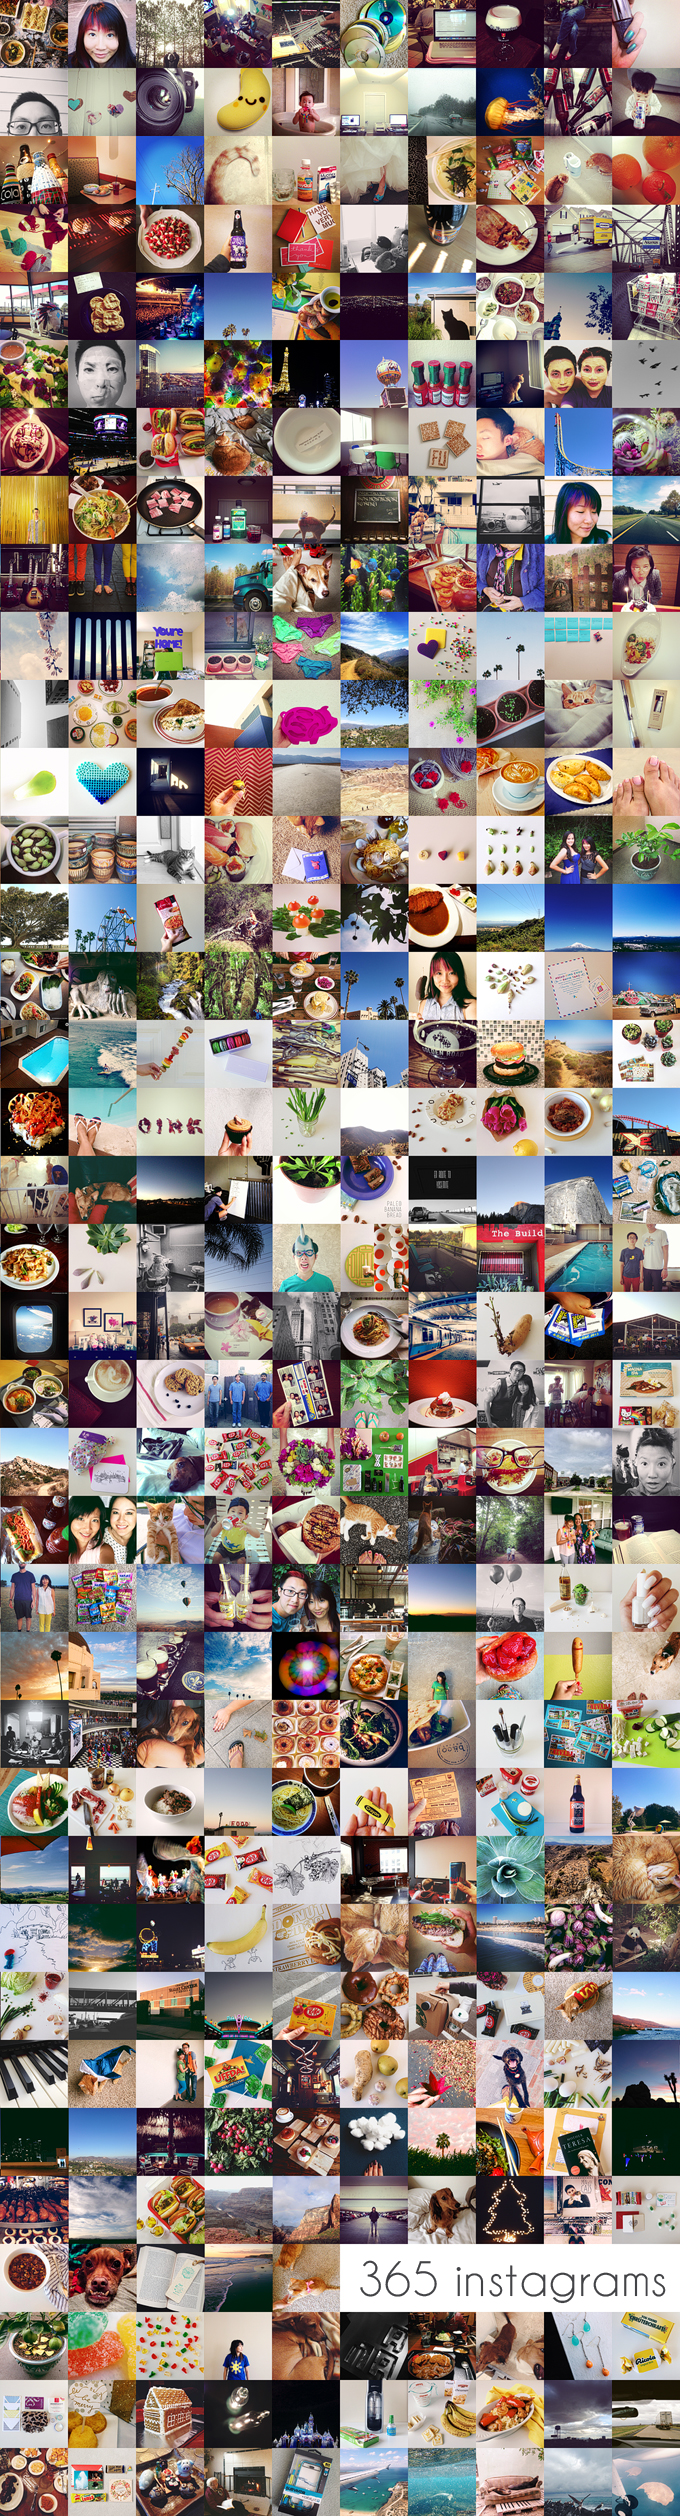 how to do instagram photo a day and 3 tips to get you through the year. 365 day photo challenge list. 365 day photo project. 365 instagrams. 365 photo a day ideas. 365 photo ideas. A photo a day. iphone project 365 instagrams. 365 photo challenge. Photo of the day.